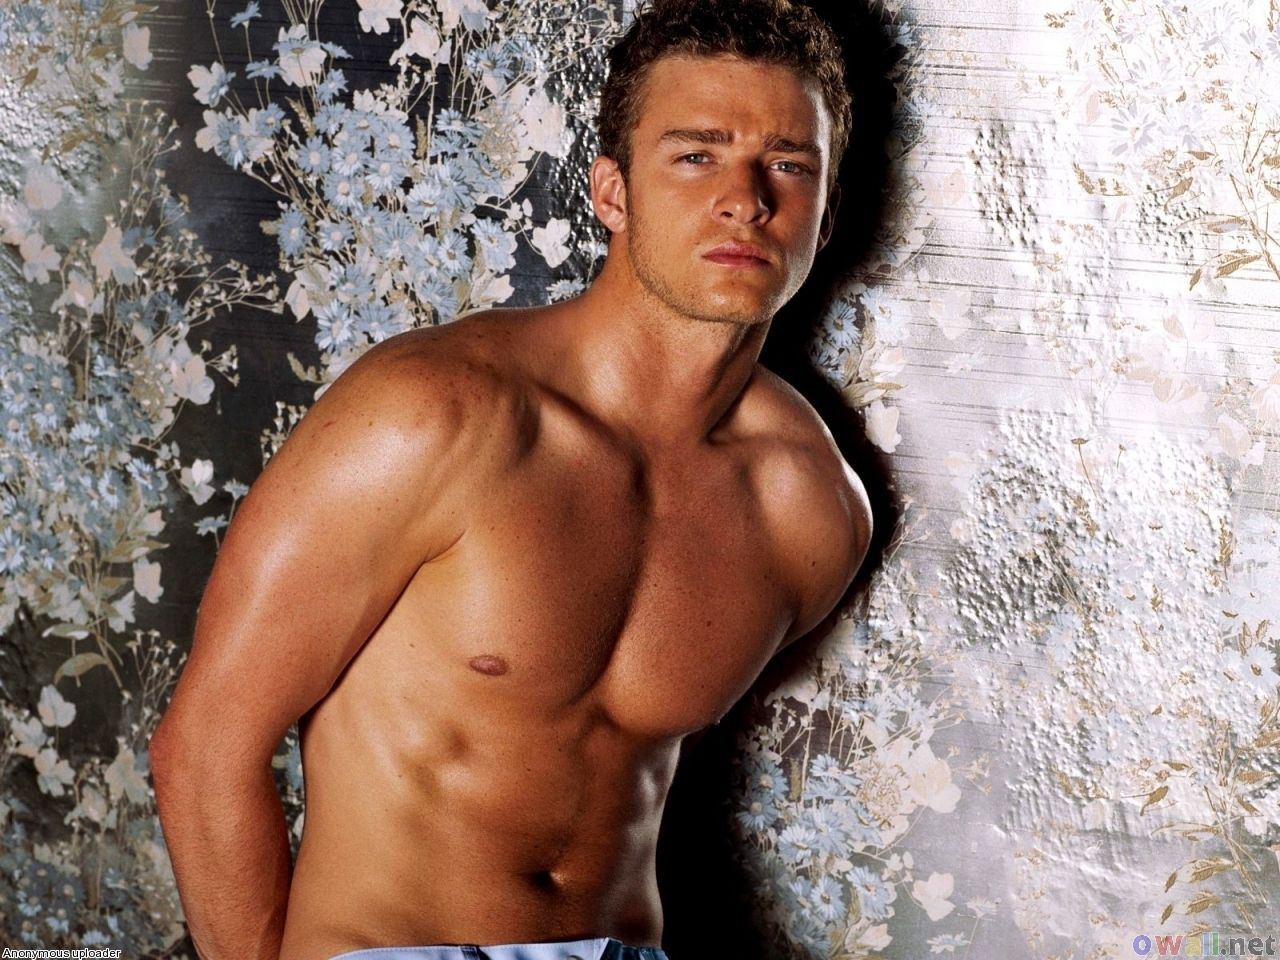 Justin Timberlake (I wasn't a fan back in the day, but I've since come to appreciate him a little more ;)